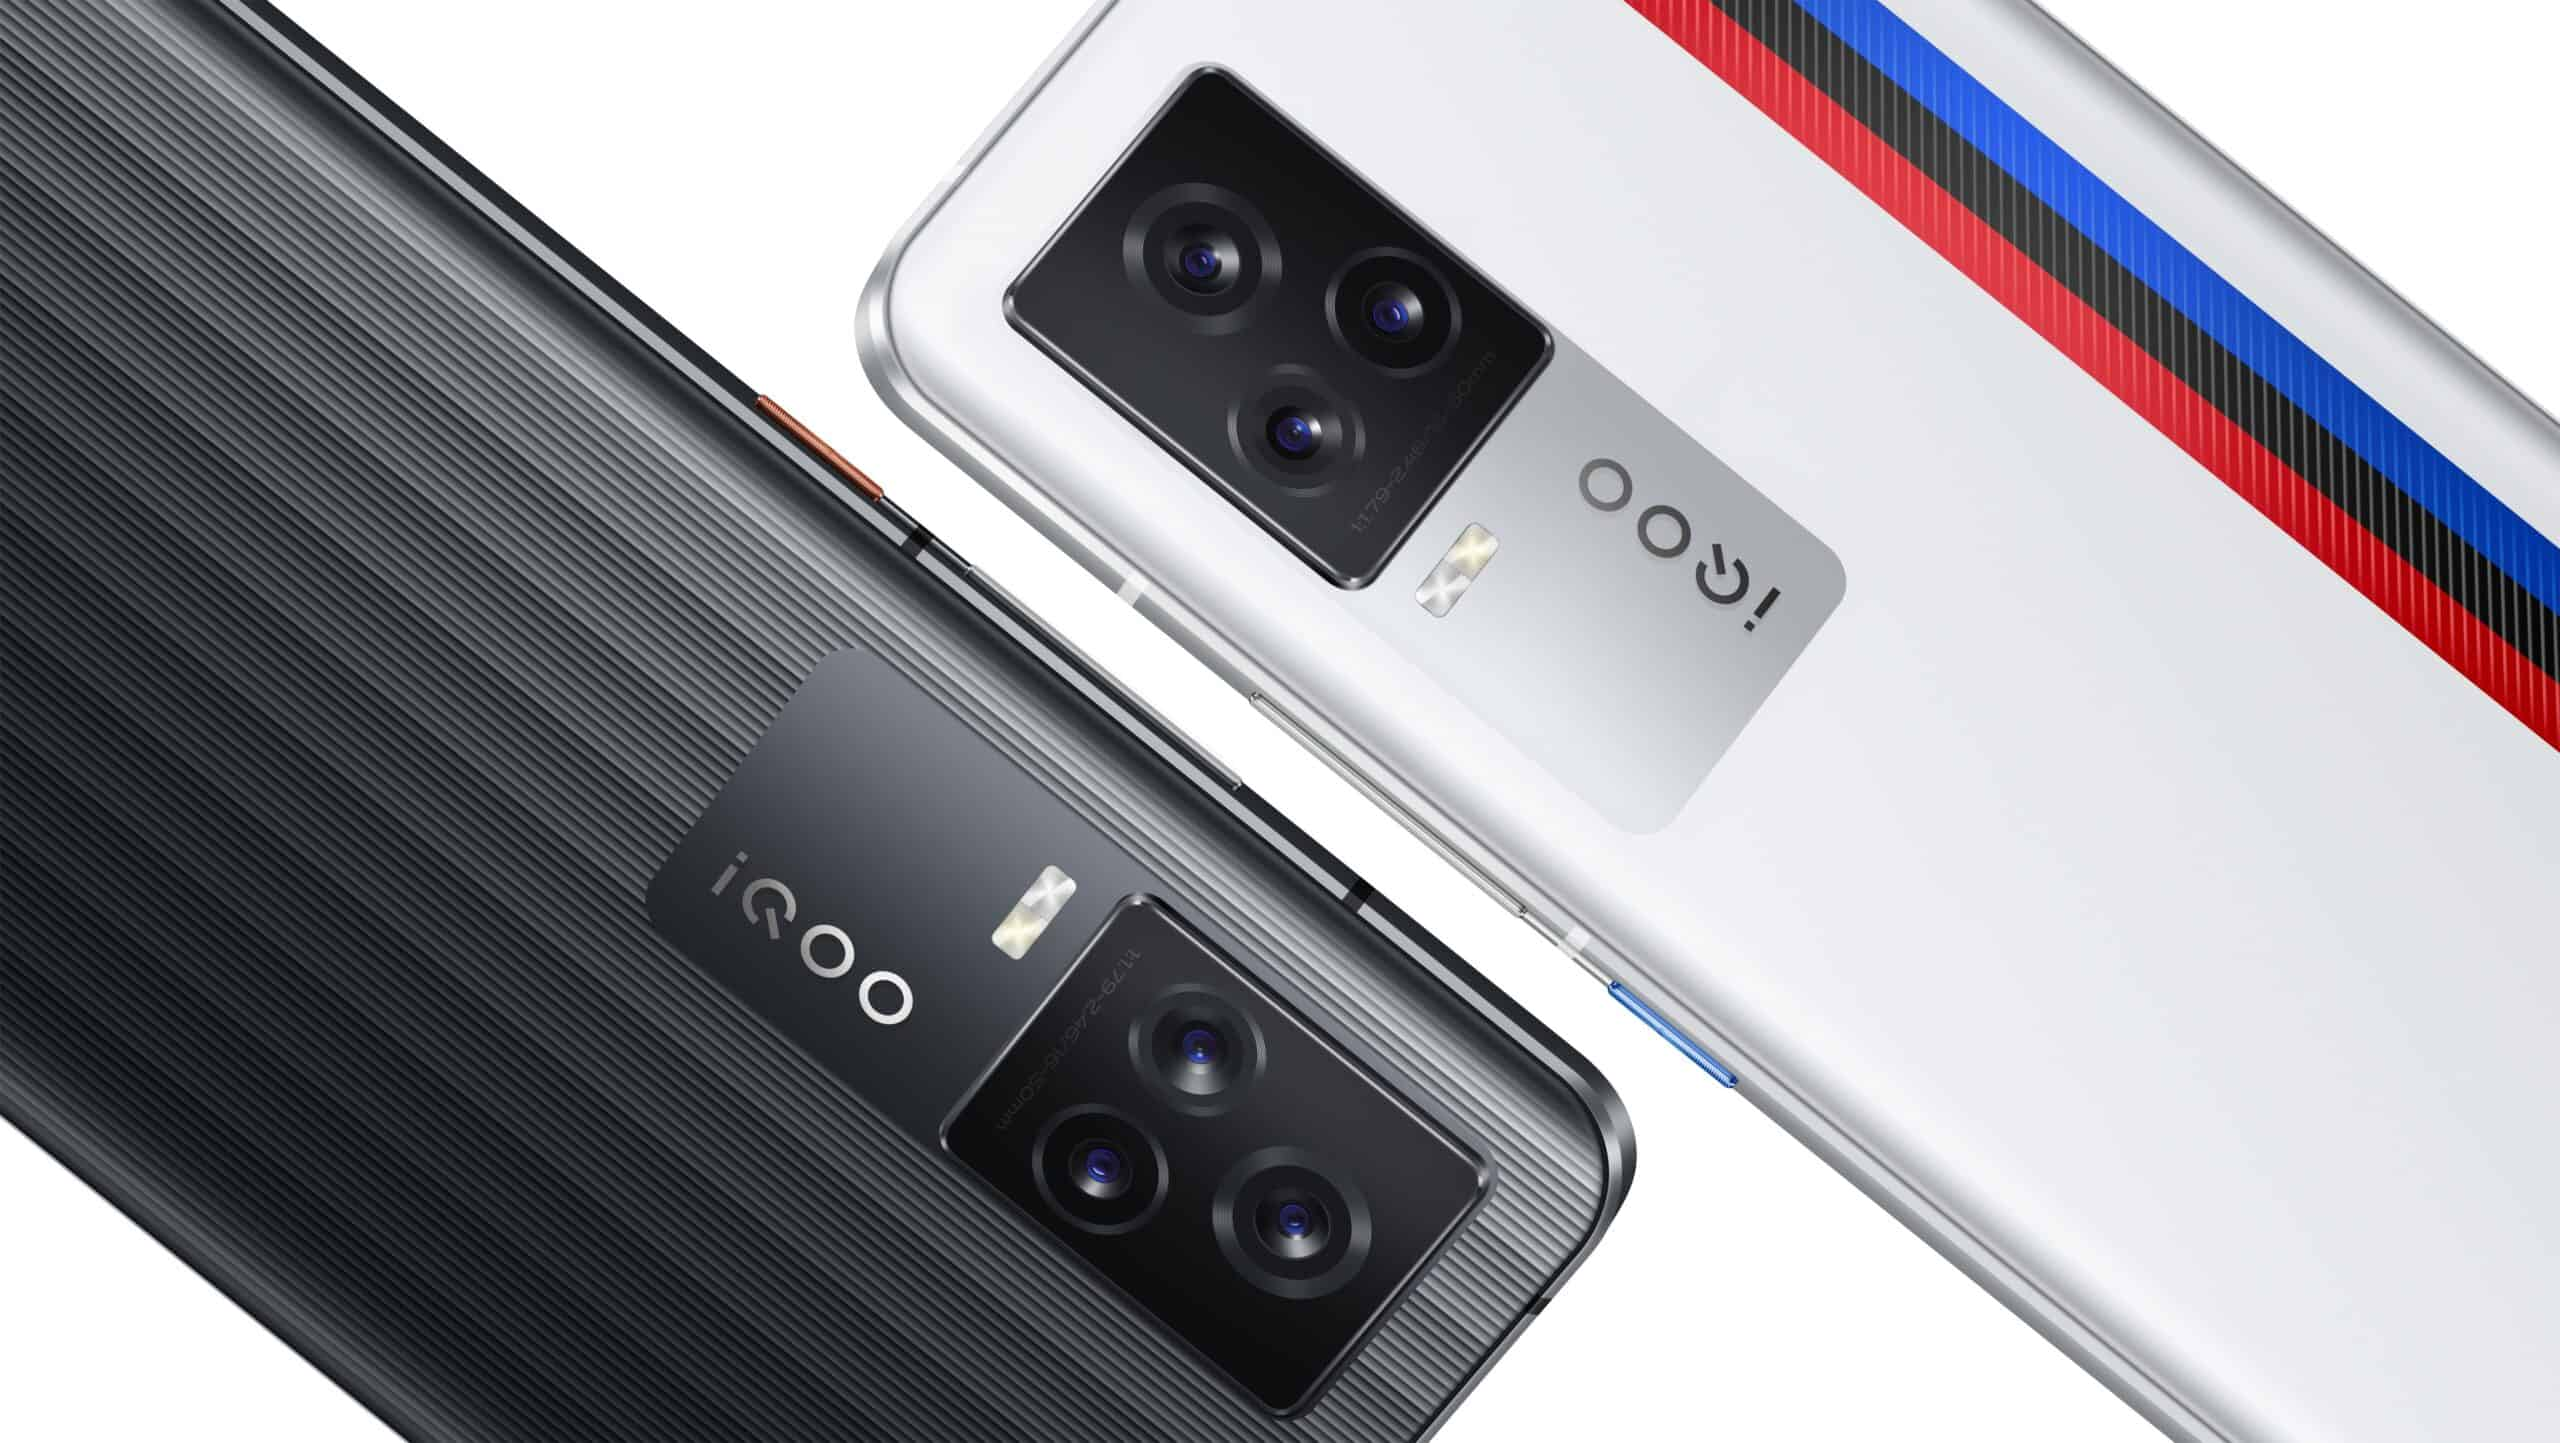 iQOO 7: Chinese smartphone gets full charged in just 15 minutes